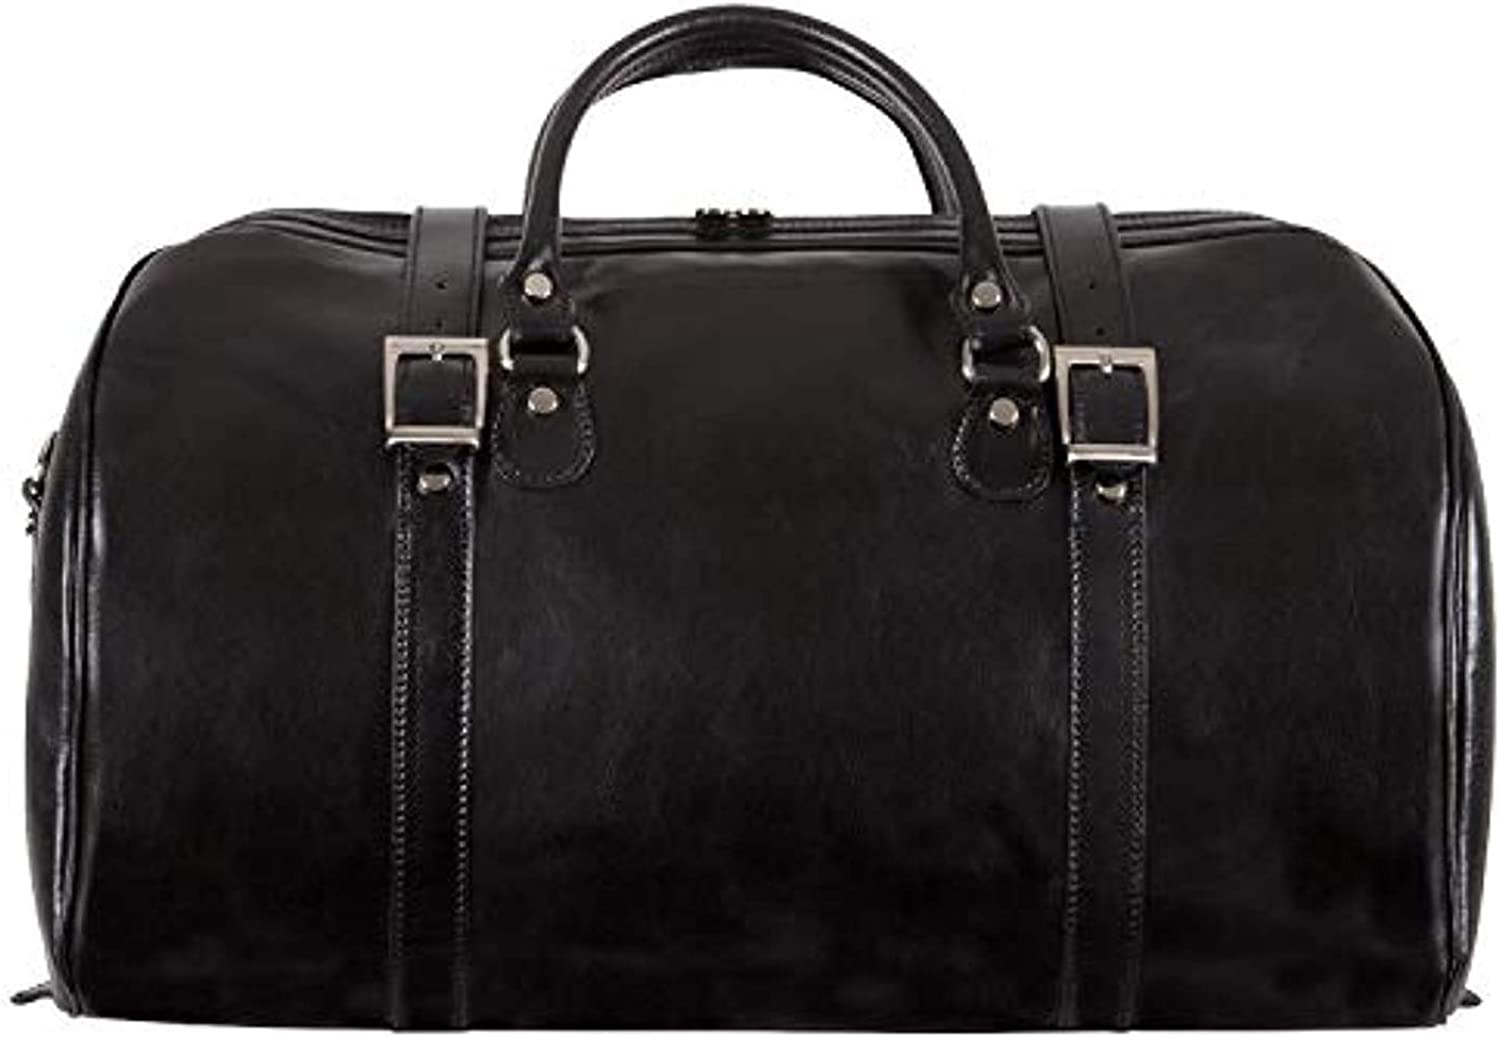 Alberto Bellucci Italian Leather Carry-on Tourist Duffel Bag